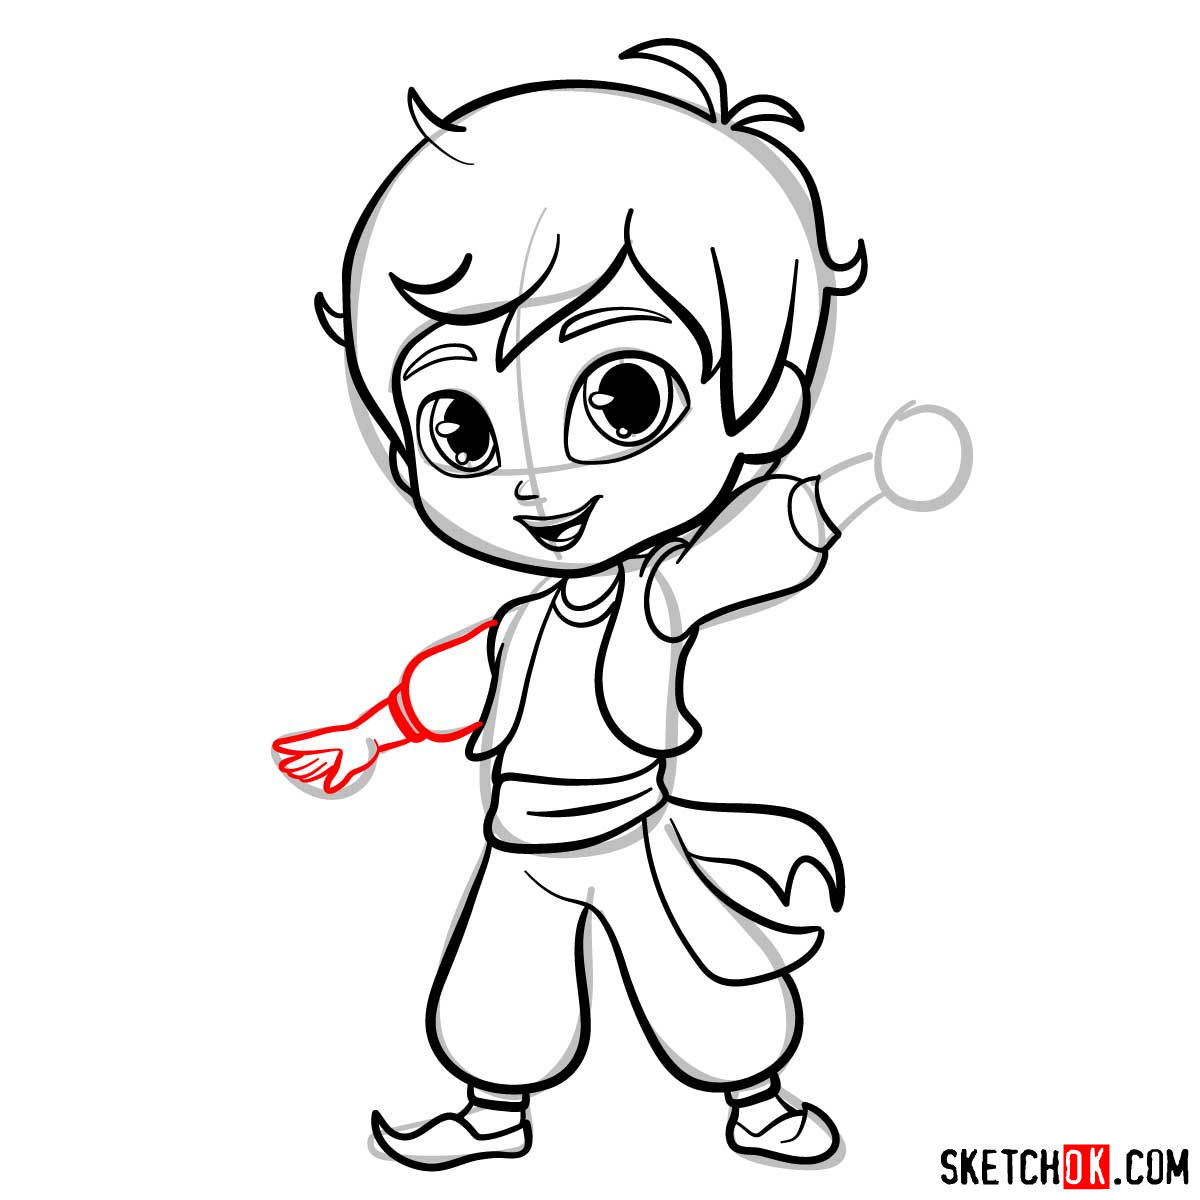 How to draw Zac from Shimmer and Shine - step 11